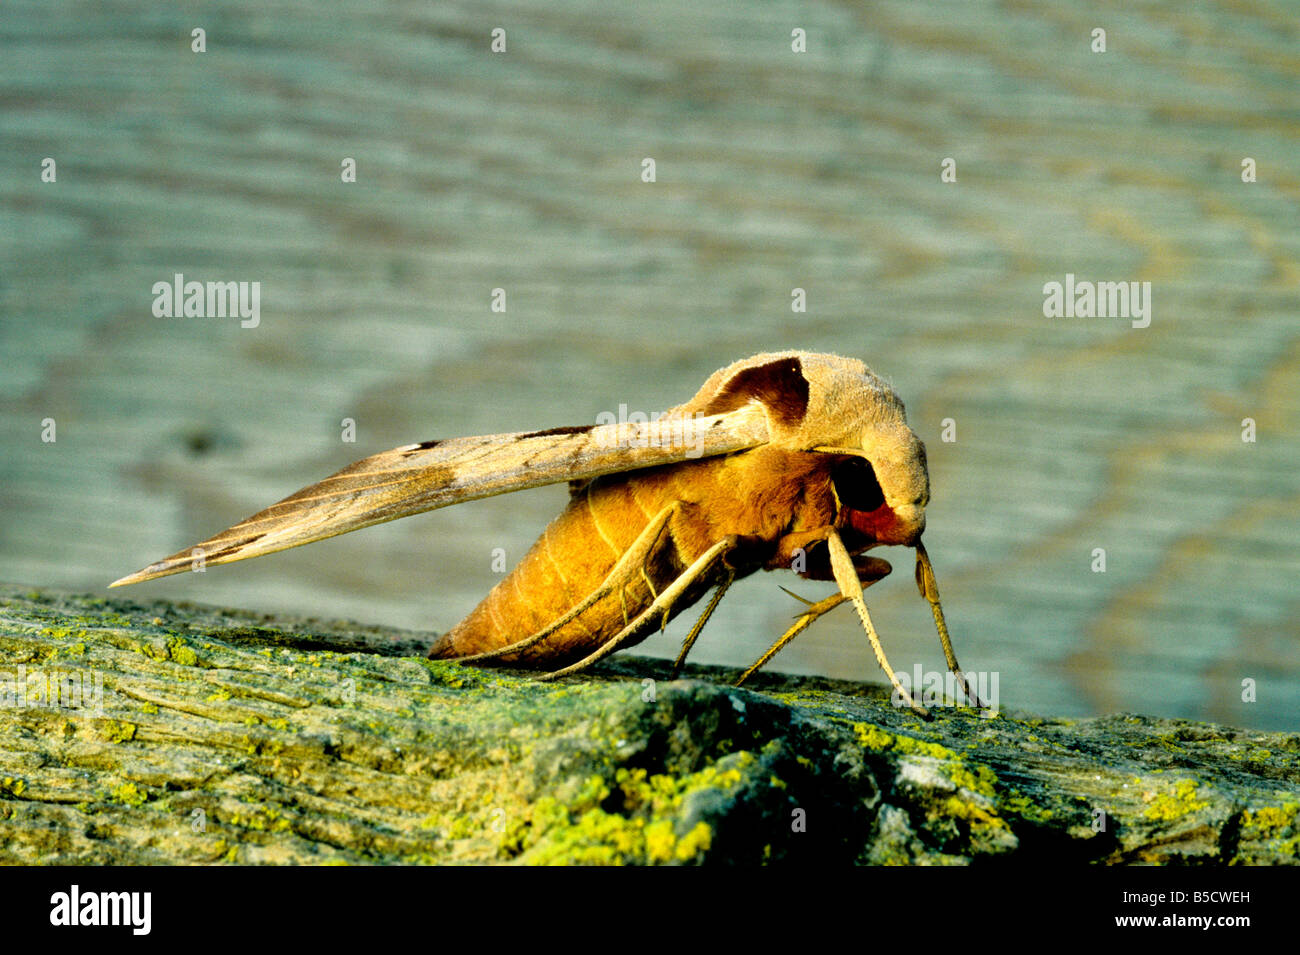 Achemon Sphinx Moth. - Stock Image